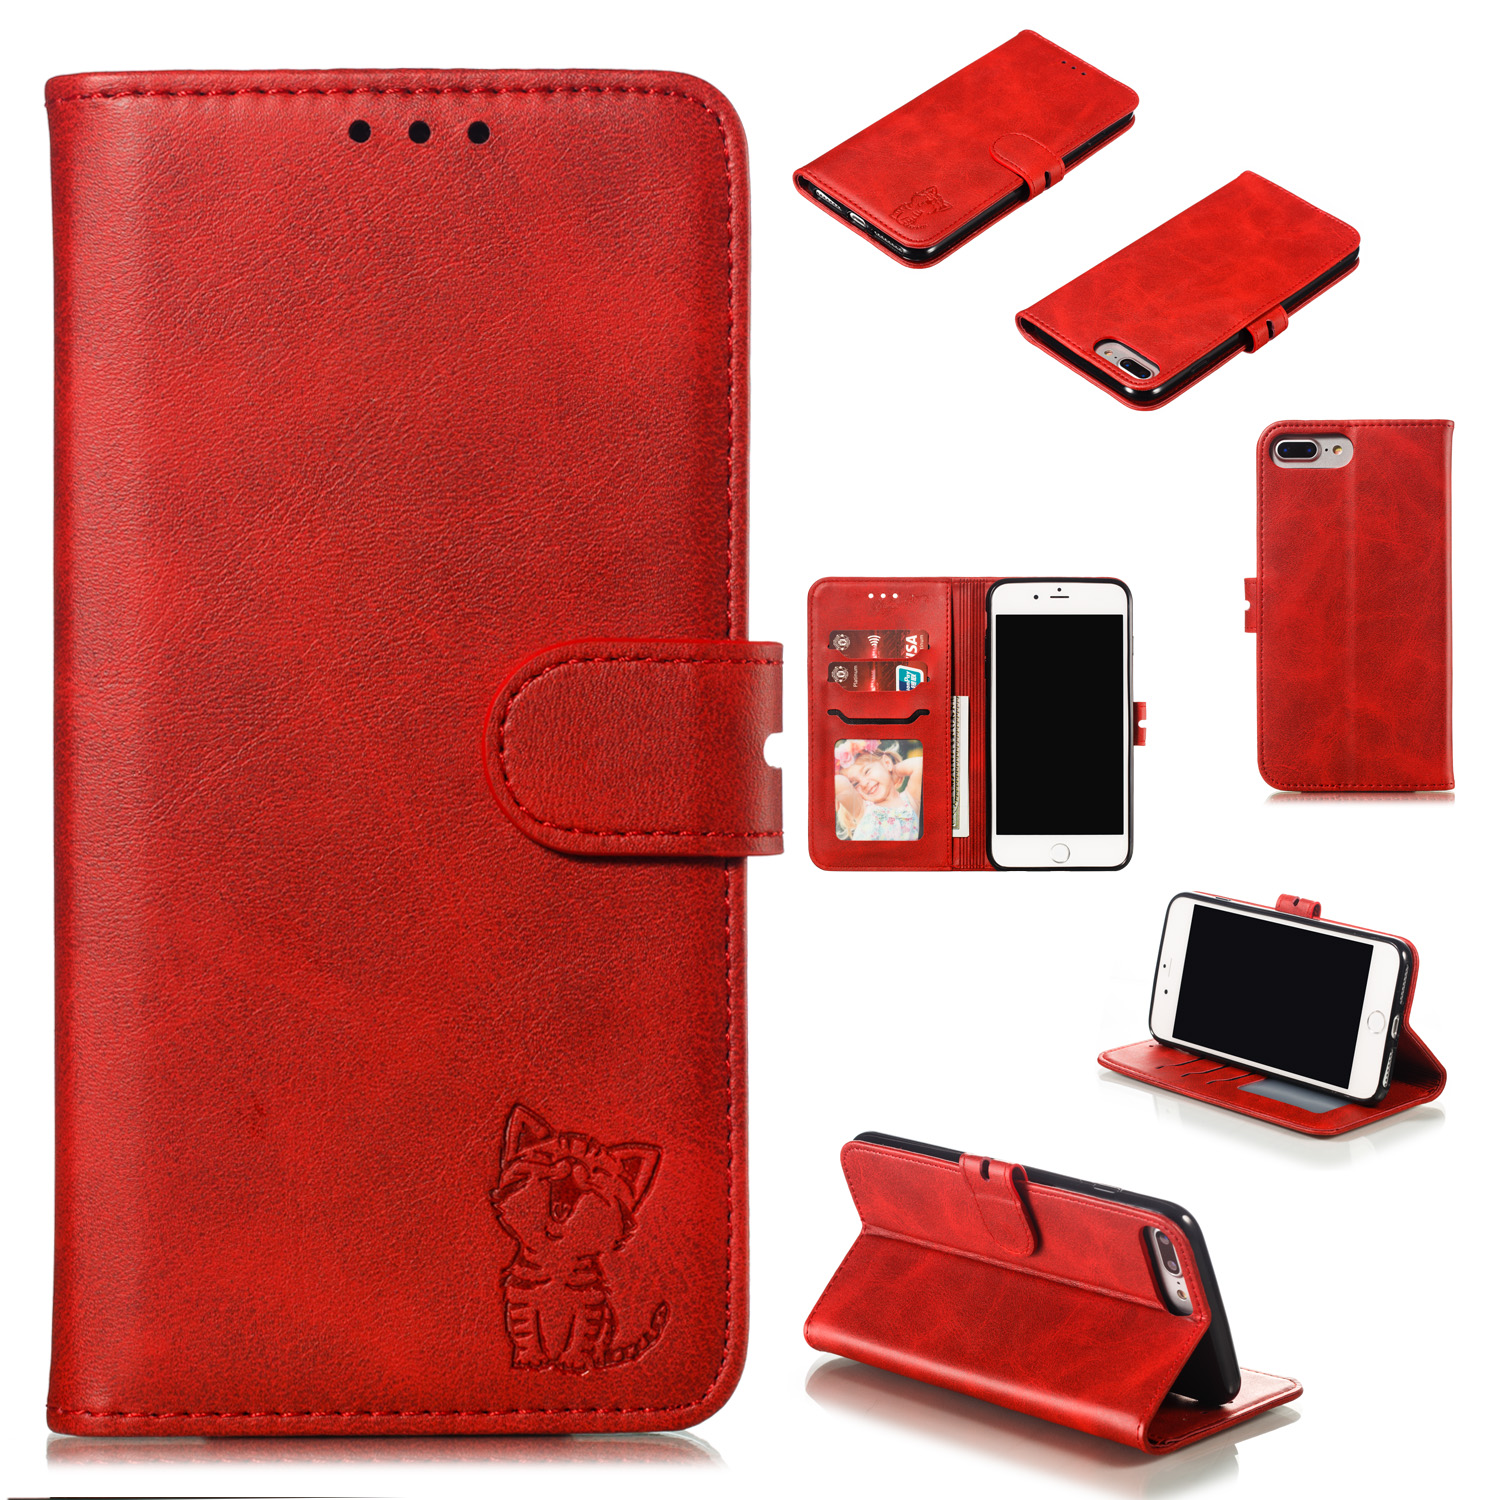 For iPhone 6 plus/6S plus/7 plus/8 plus Wallet-type Cute Cartoon Embossed Happy Cat PU Leather Protective Phone Case with Buckle & Bracket red